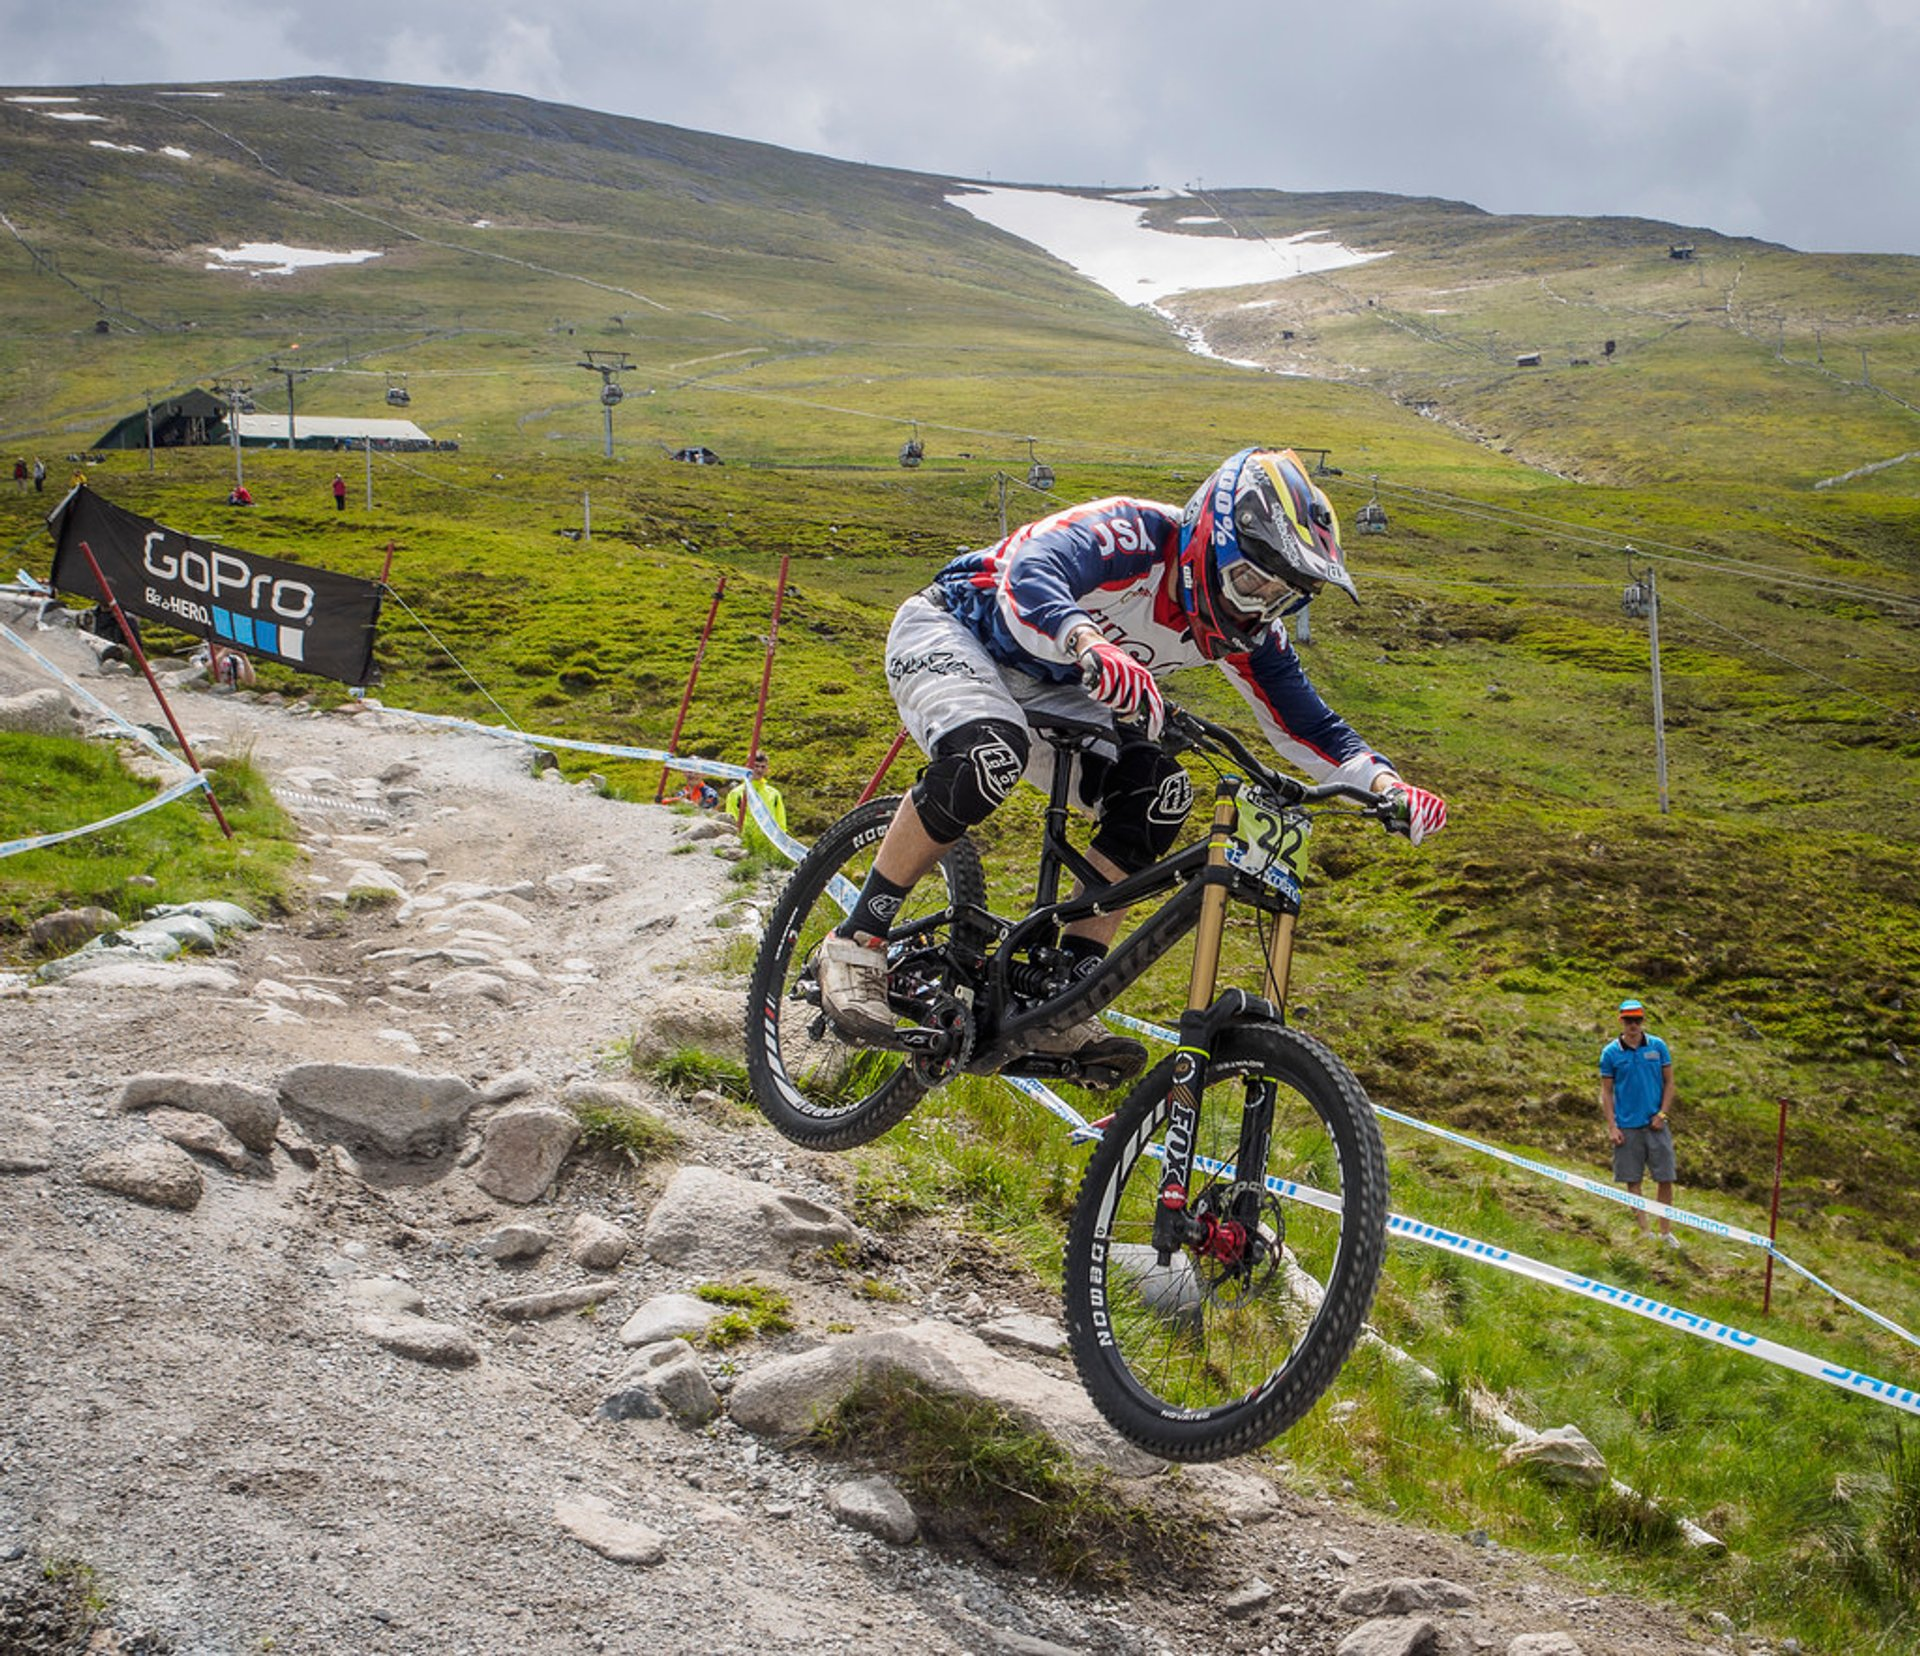 Cycling & Mountain Biking in Scotland 2020 - Best Time